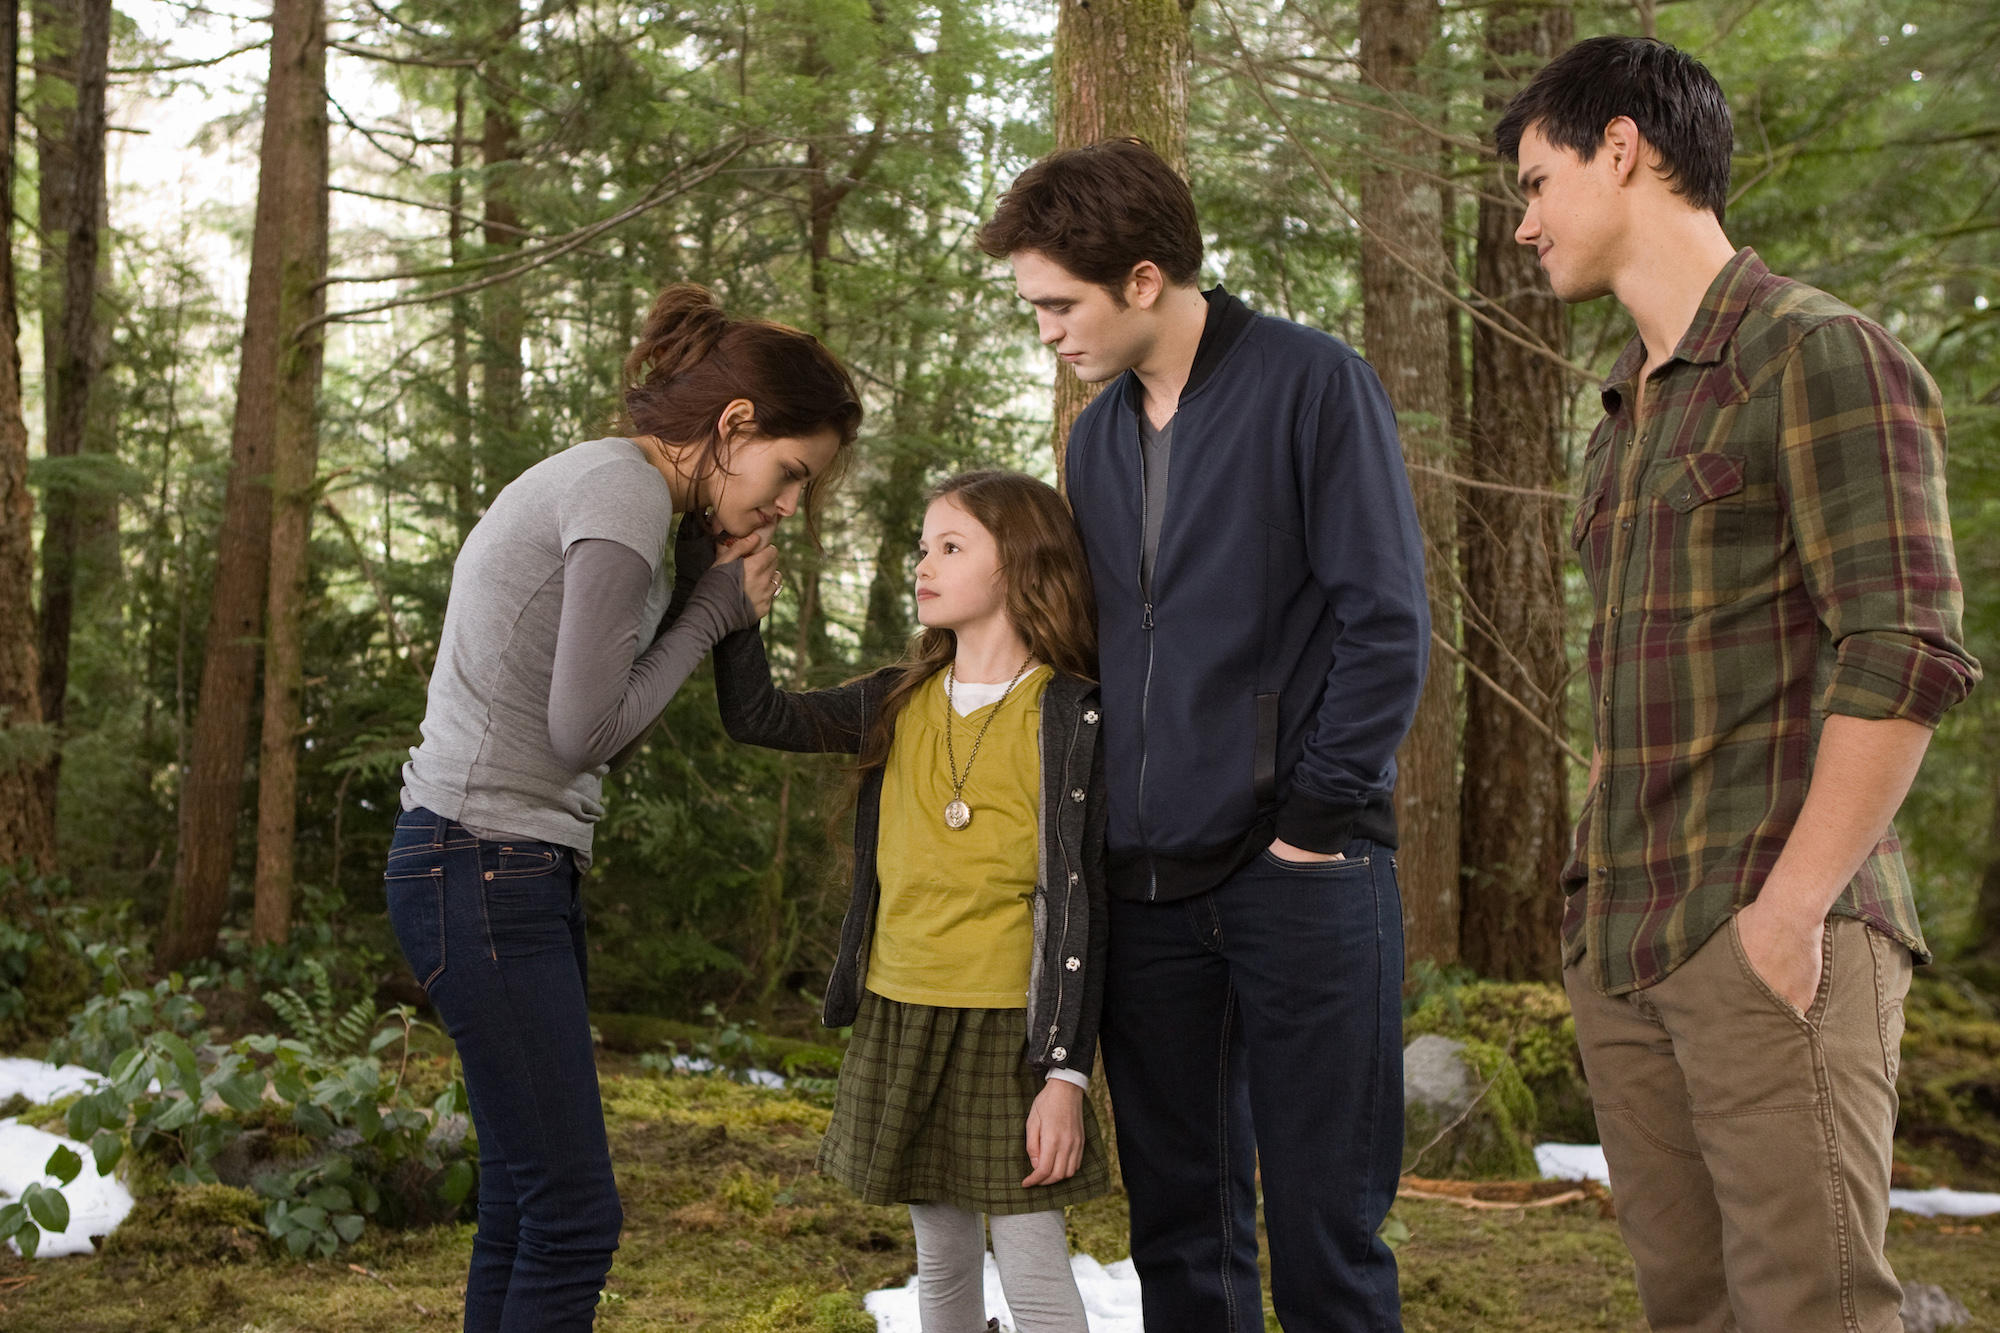 KRISTEN STEWART, MACKENZIE FOY, ROBERT PATTINSON, and TAYLOR LAUTNER in 'THE TWILIGHT SAGA: BREAKING DAWN-PART 2.'